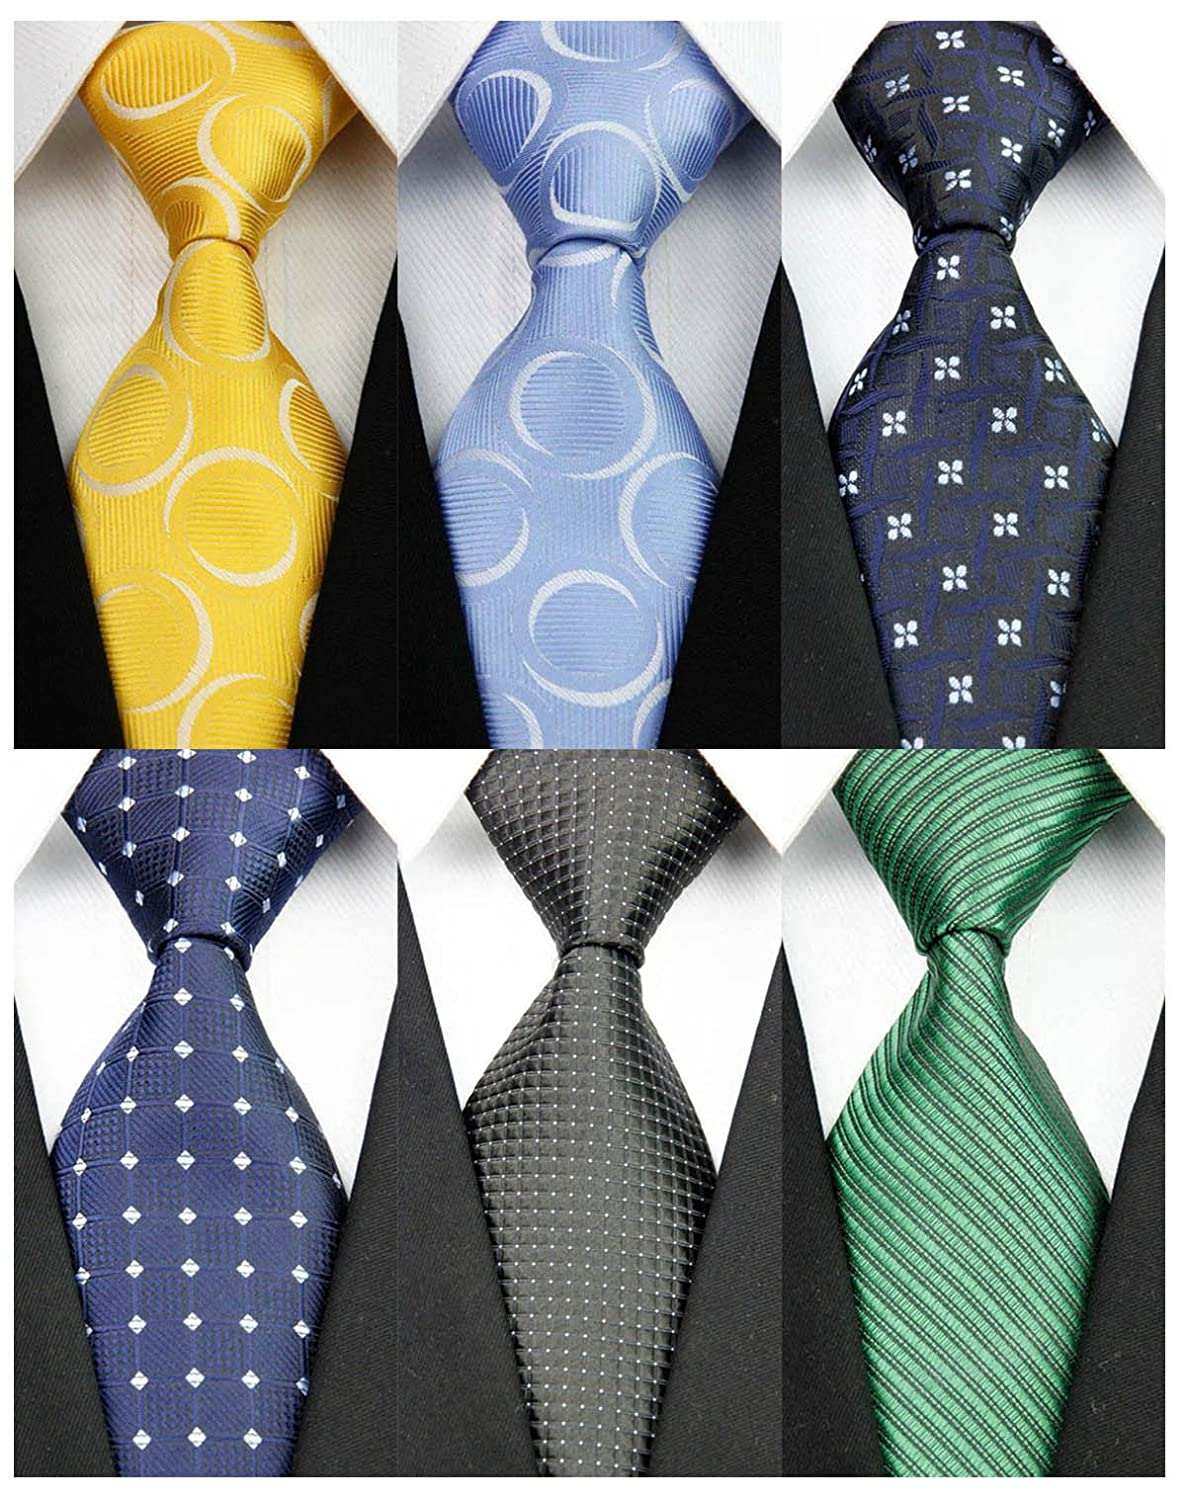 YanLen Pack of 6 Classic Men's Silk Polyester Tie Necktie Woven JACQUARD Neck Ties